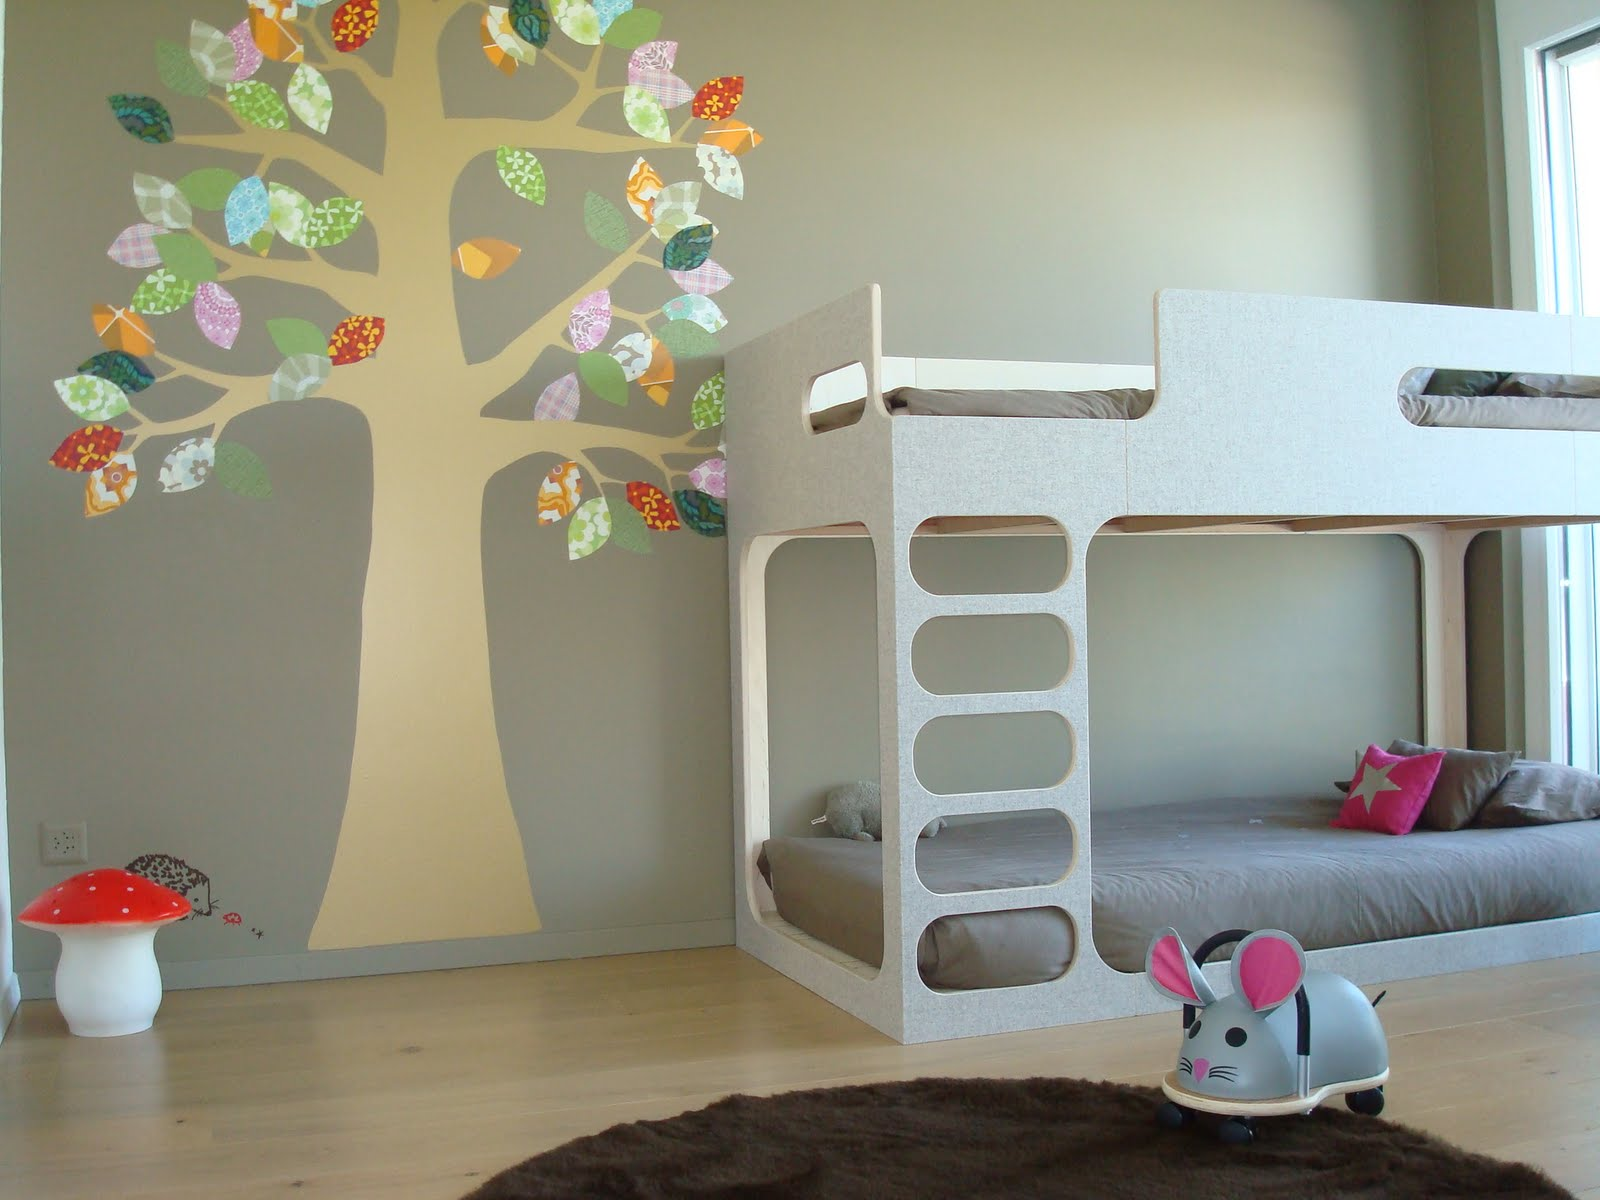 childrens bedroom wallpaper ideas home decor uk. Black Bedroom Furniture Sets. Home Design Ideas